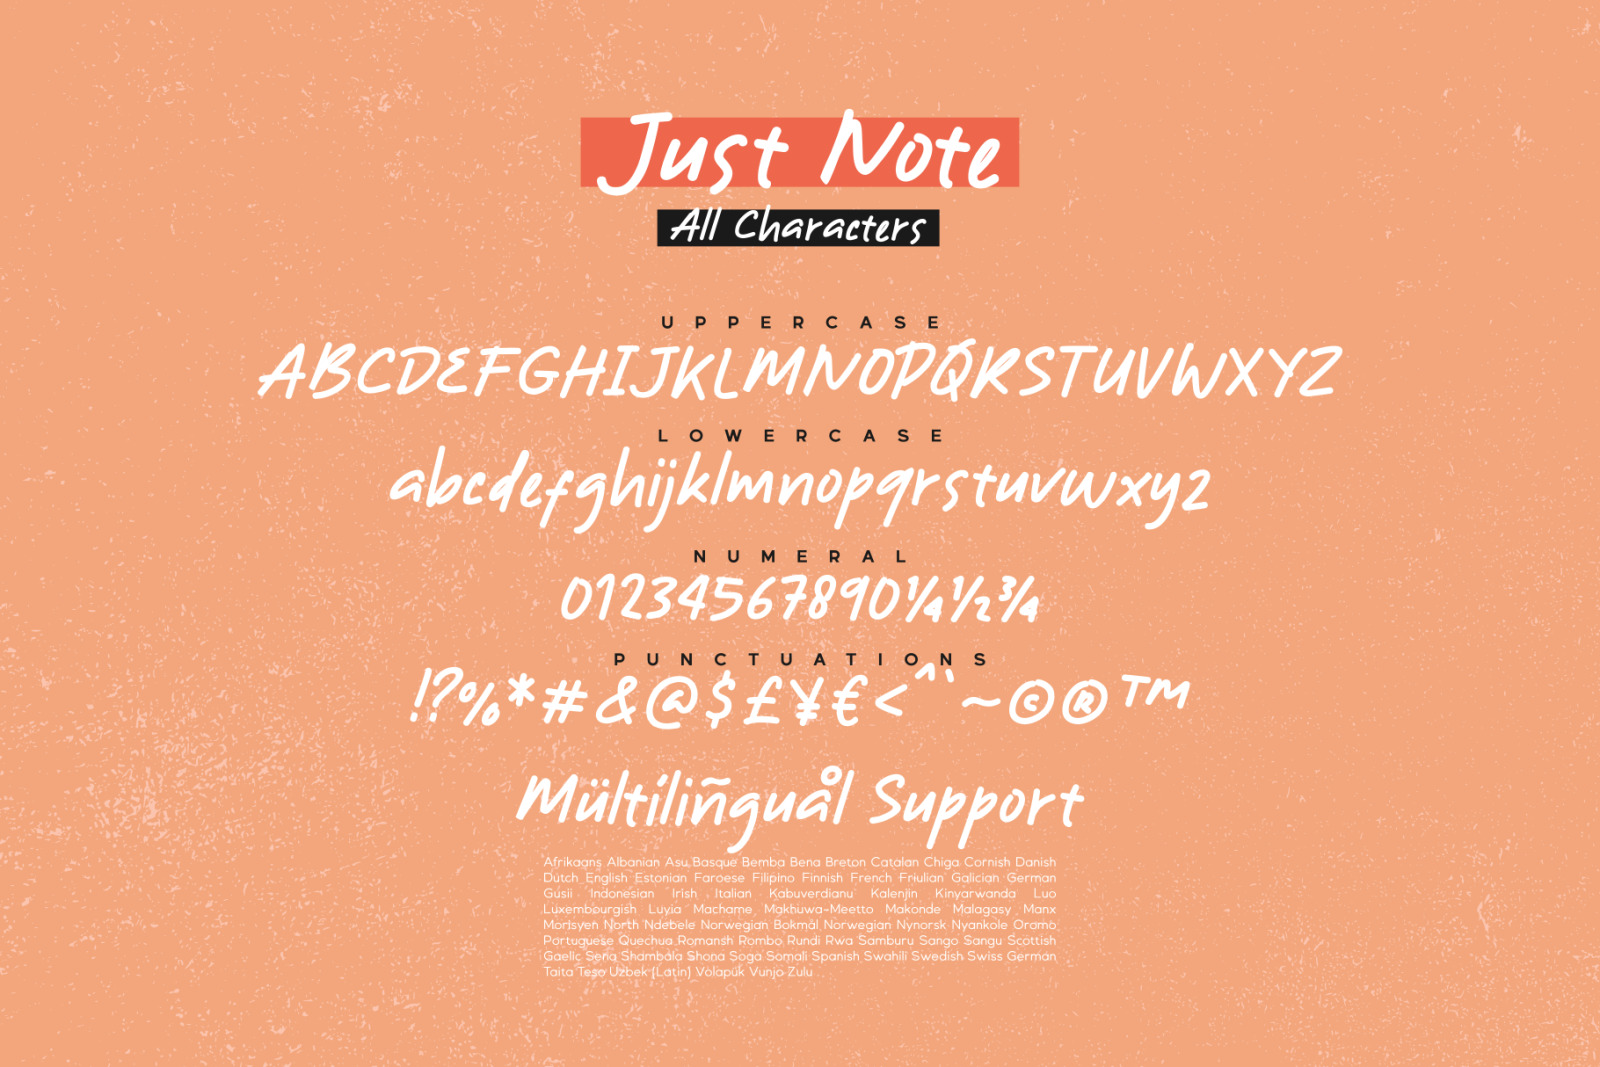 Just Note - Font and Doodle